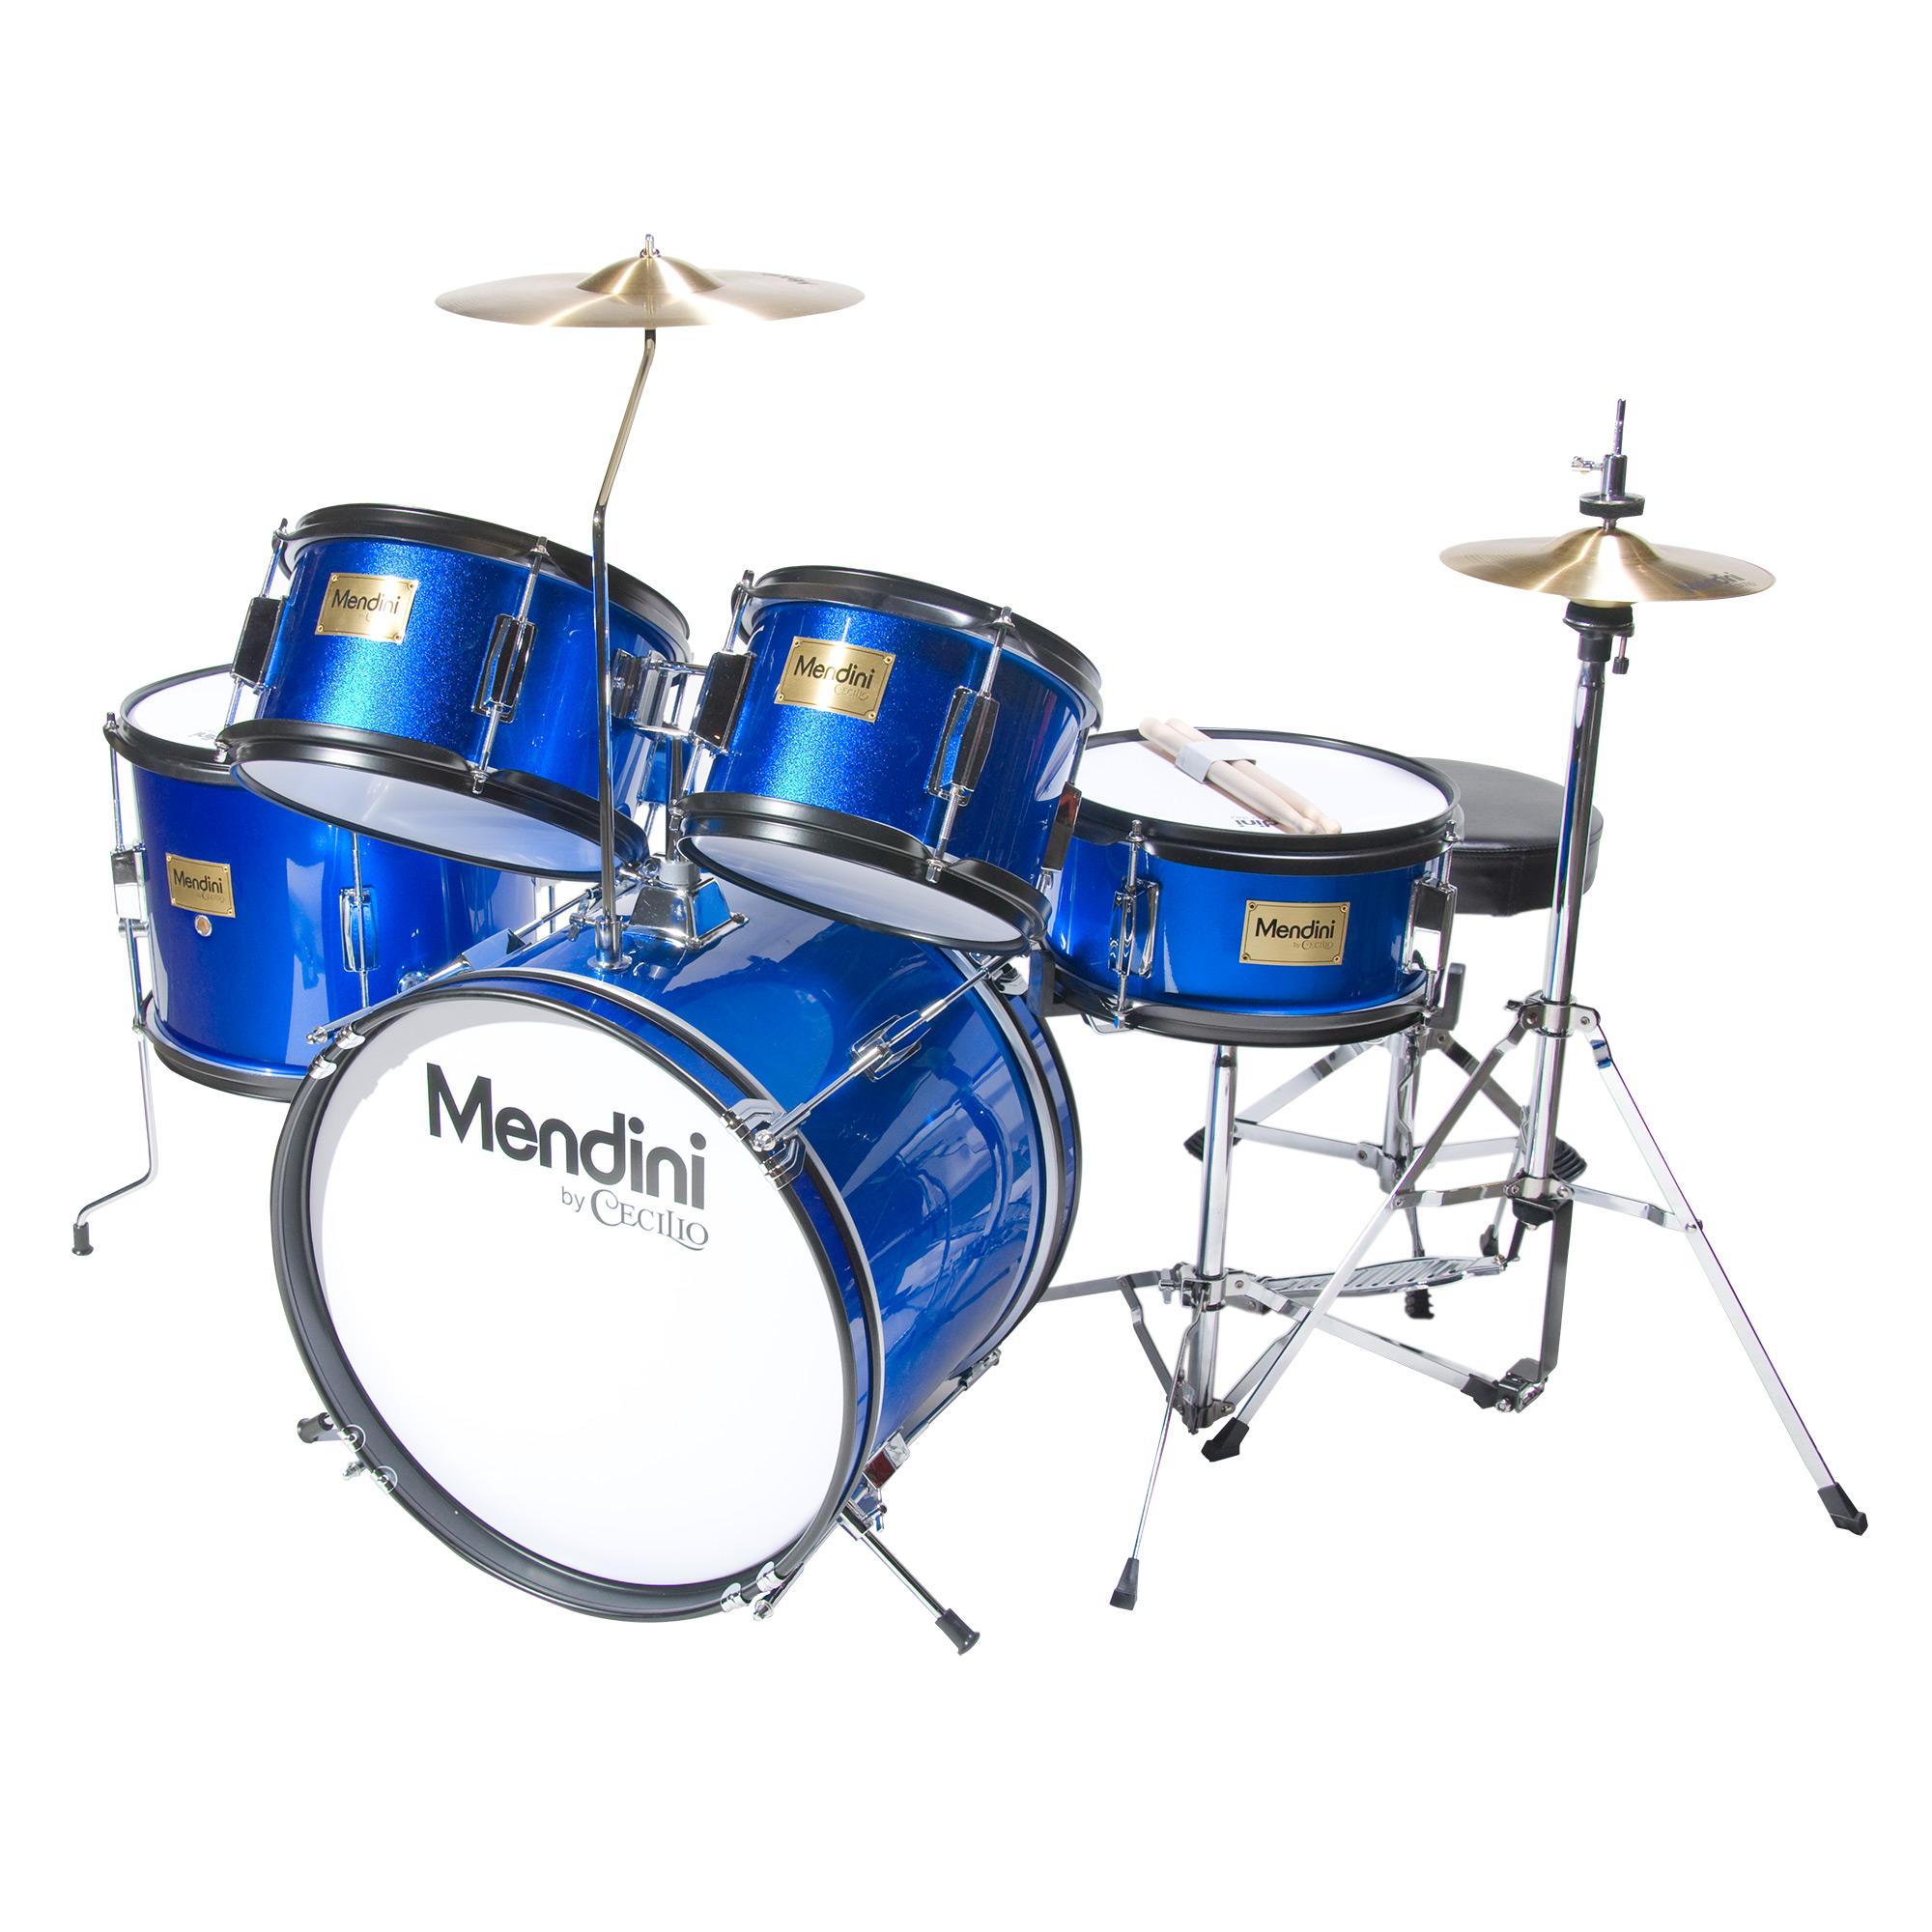 "Mendini by Cecilio 16"" 5-Piece Complete Kids / Junior Drum Set with Adjustable Throne, Cymbal, Pedal & Drumsticks, Metallic Blue, MJDS-5-BL"